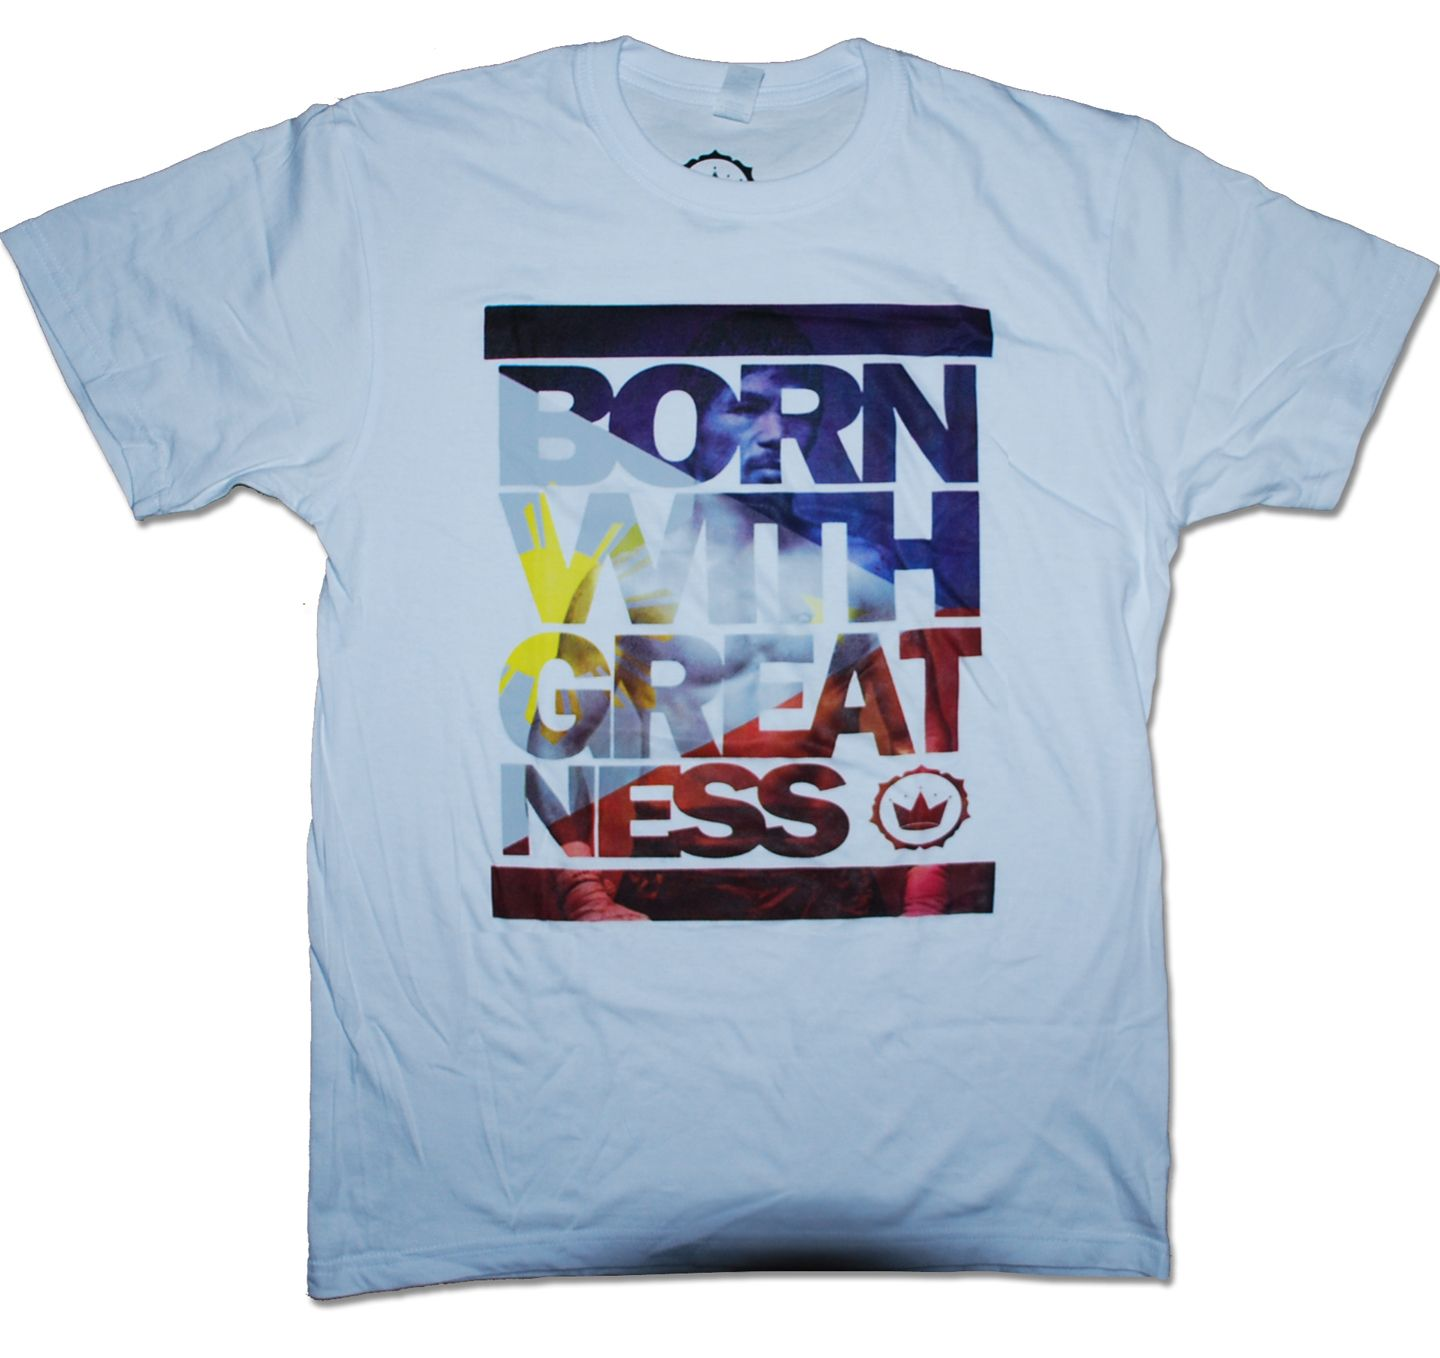 Design the t shirt - T Shirt Printing Design